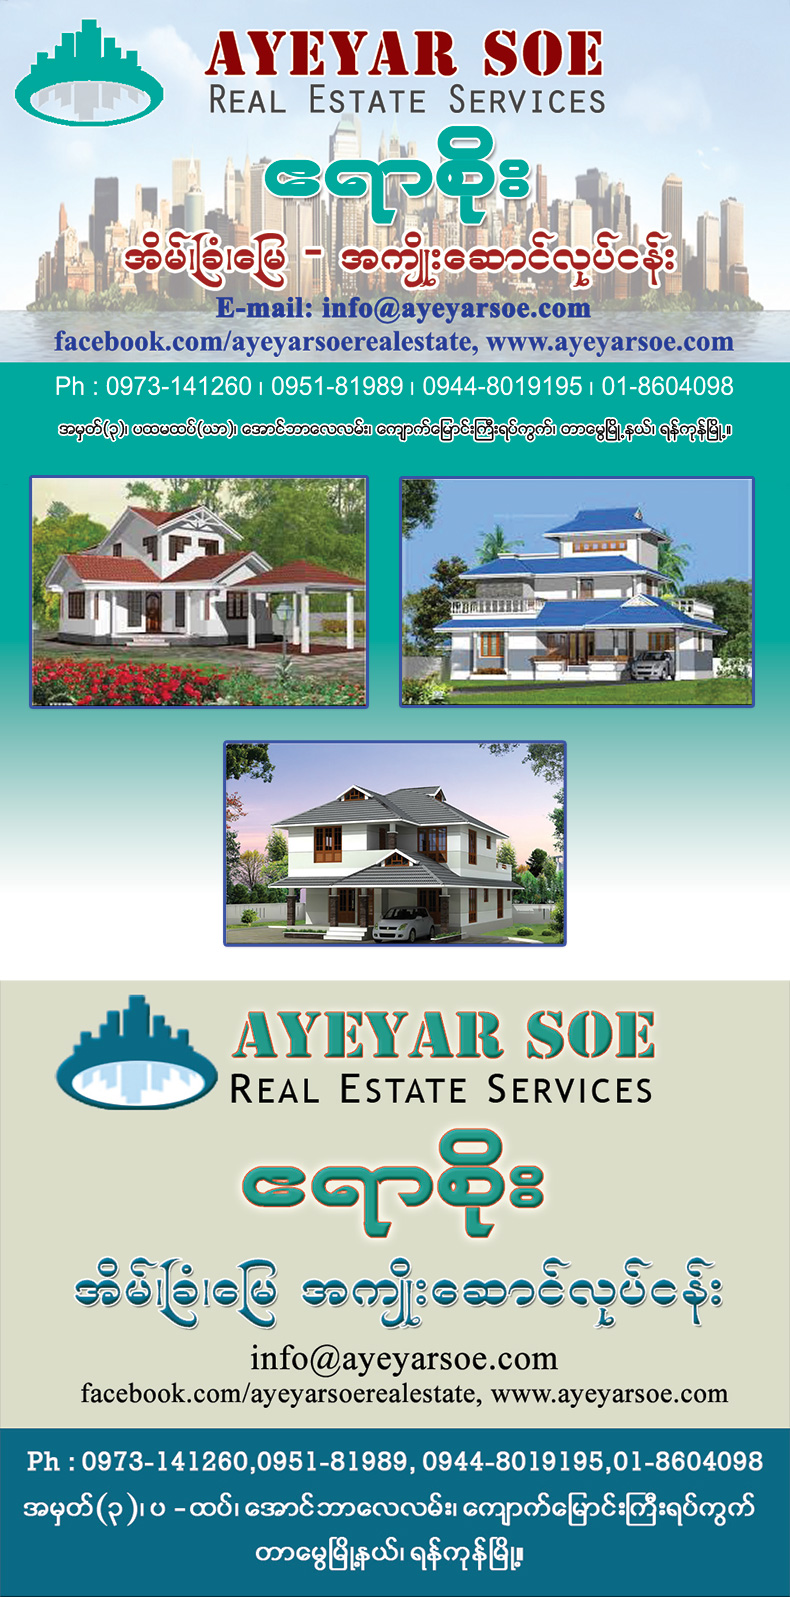 Ayeyar Soe Real Estate Services